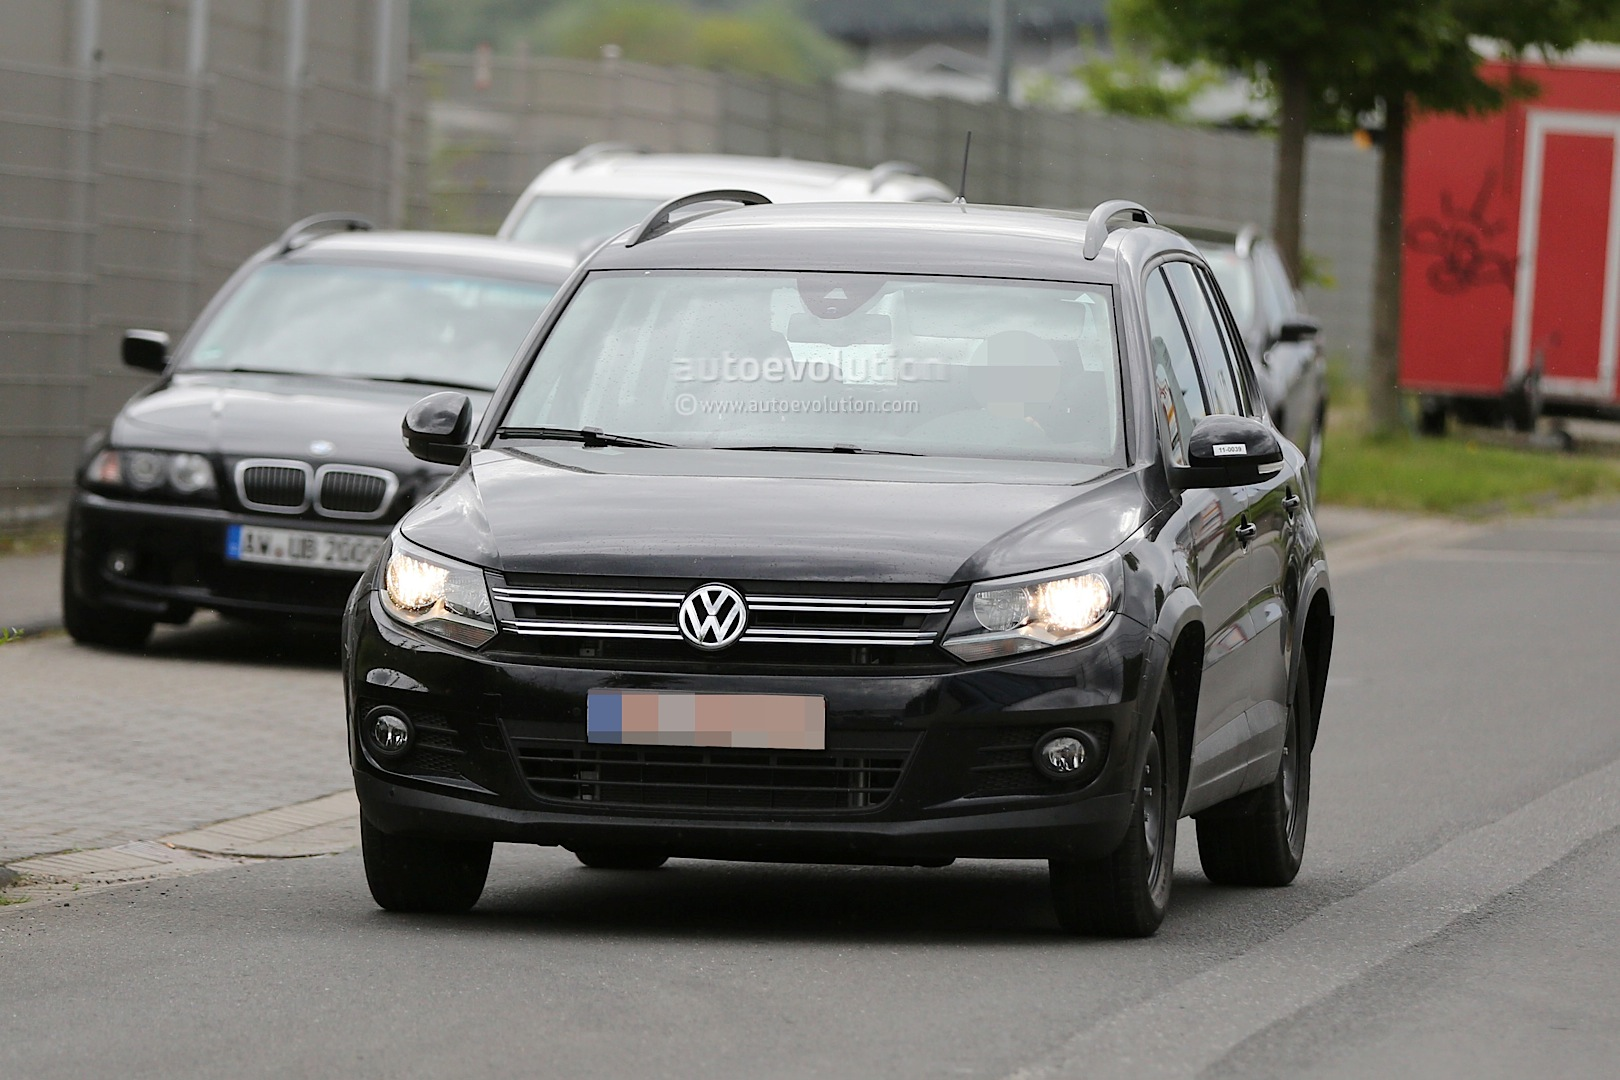 spyshots all new 2015 volkswagen tiguan will be wider. Black Bedroom Furniture Sets. Home Design Ideas